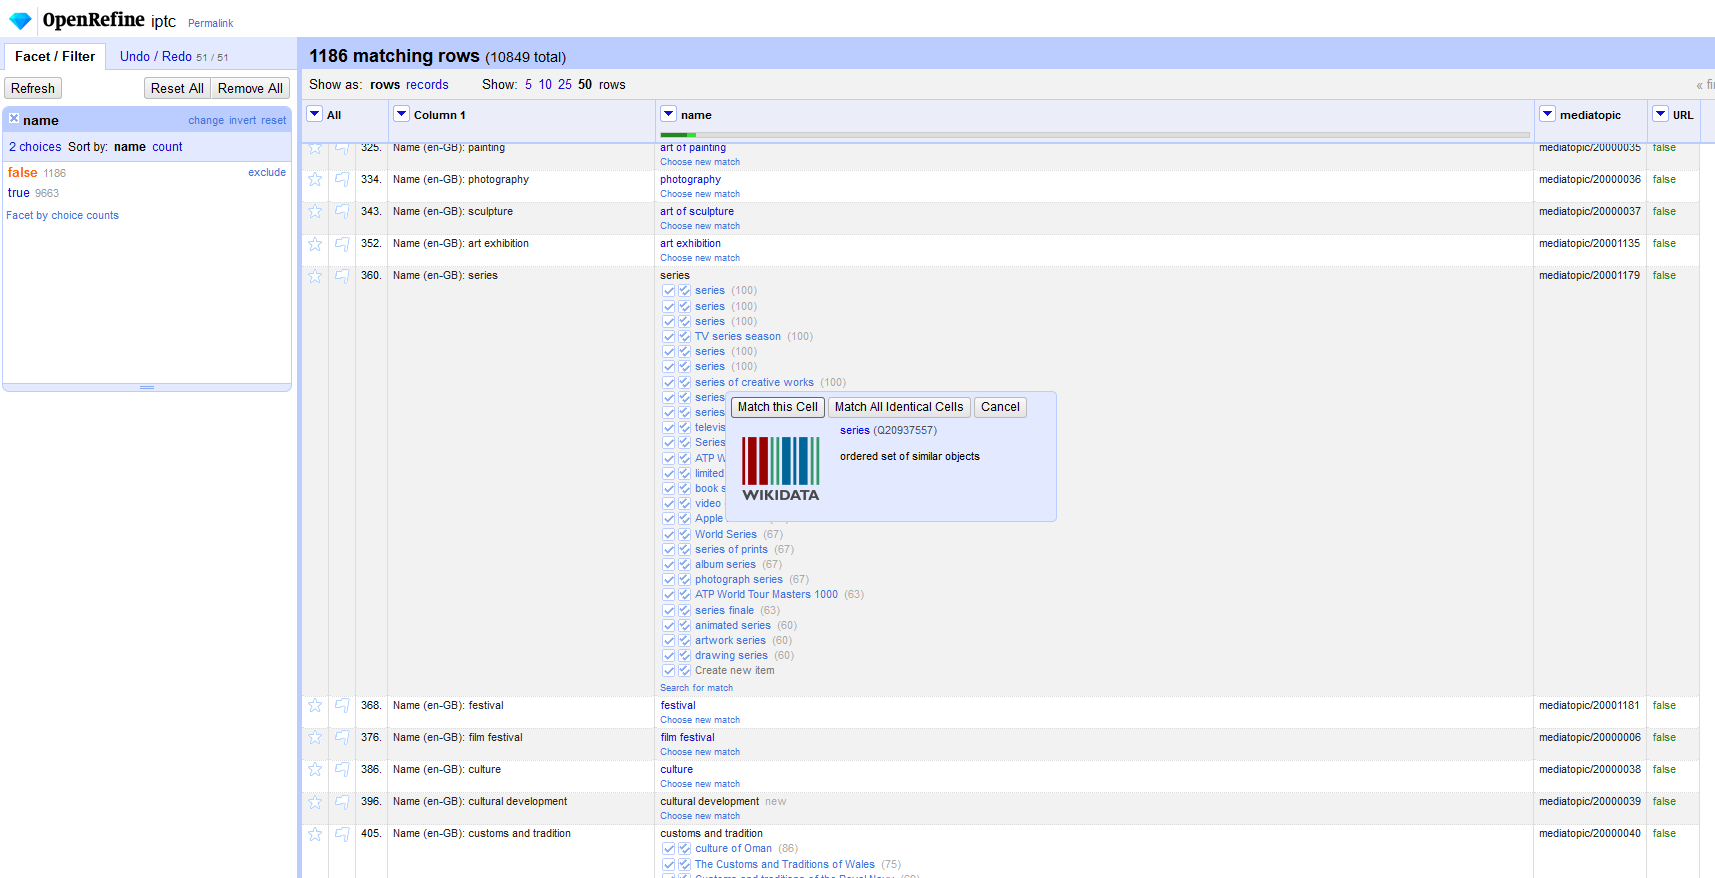 Schema org should have mappings to Wikidata terms where